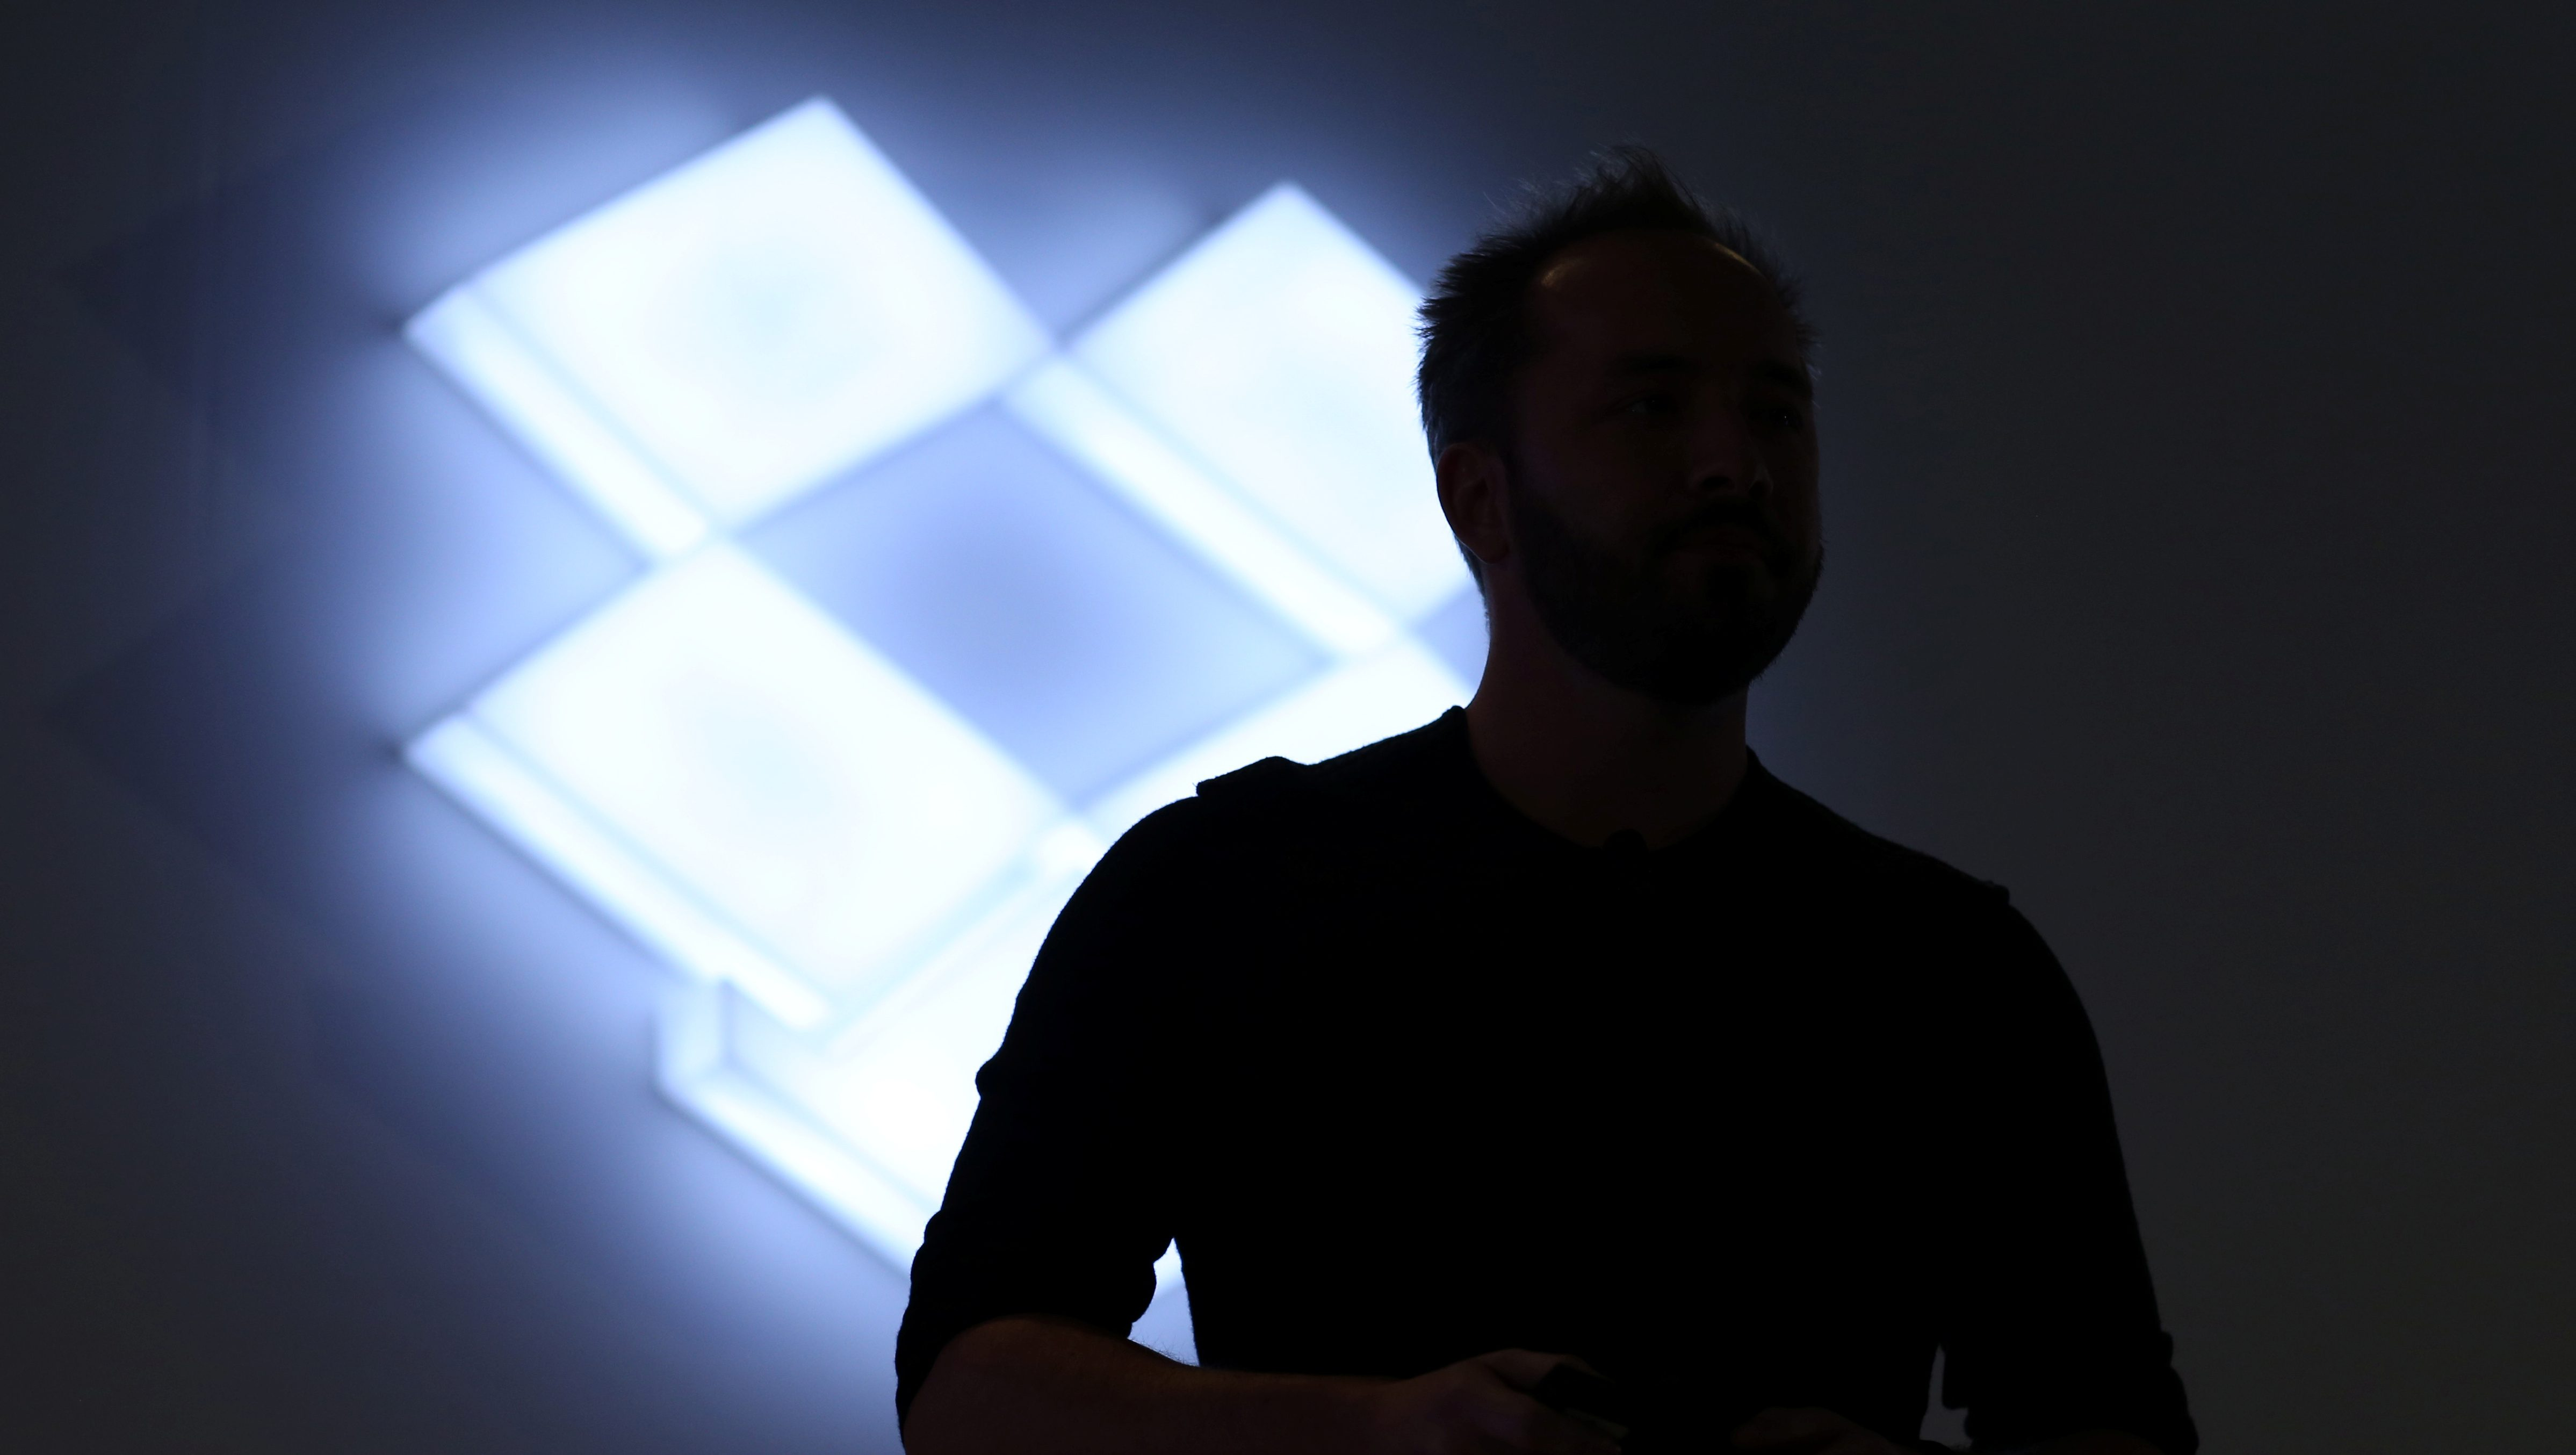 Drew Houston, Chief Executive Officer and founder of Dropbox, stands in front of the company's logo at an announcement event in San Francisco, California, U.S., January 30, 2017. REUTERS/Beck Diefenbach - RC12885F1140